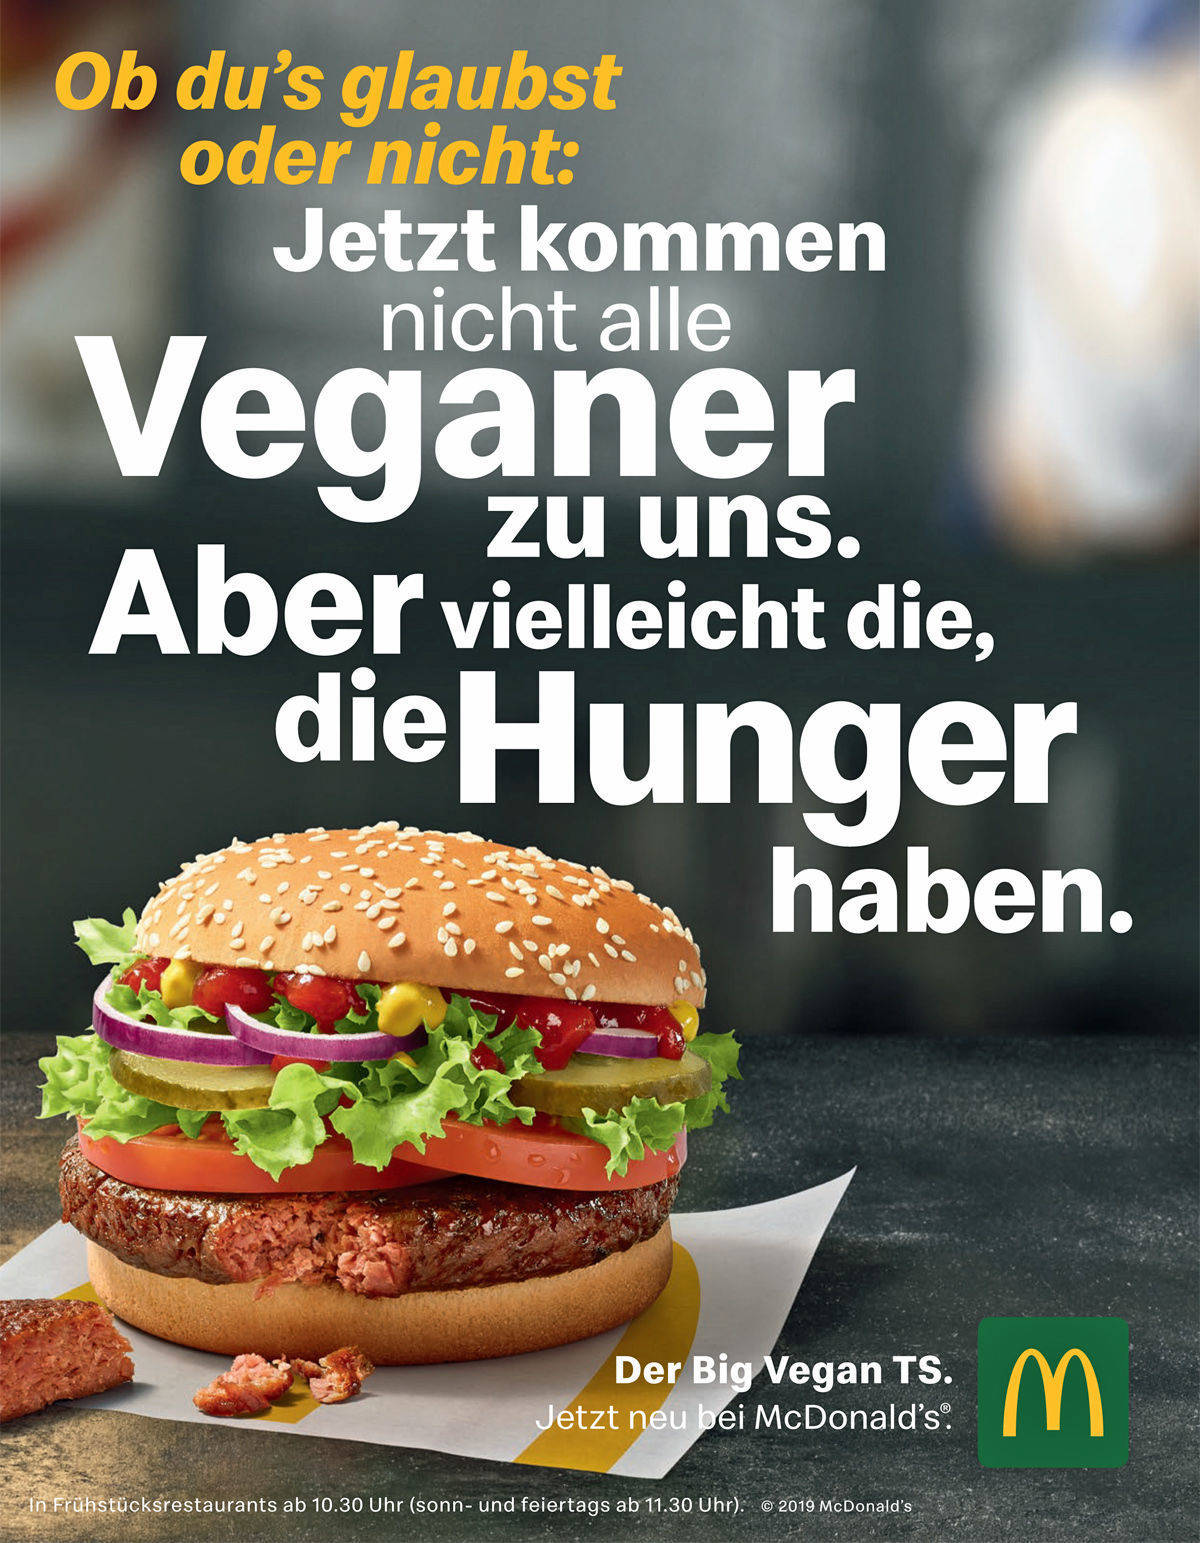 mcdonalds vegan burger germany